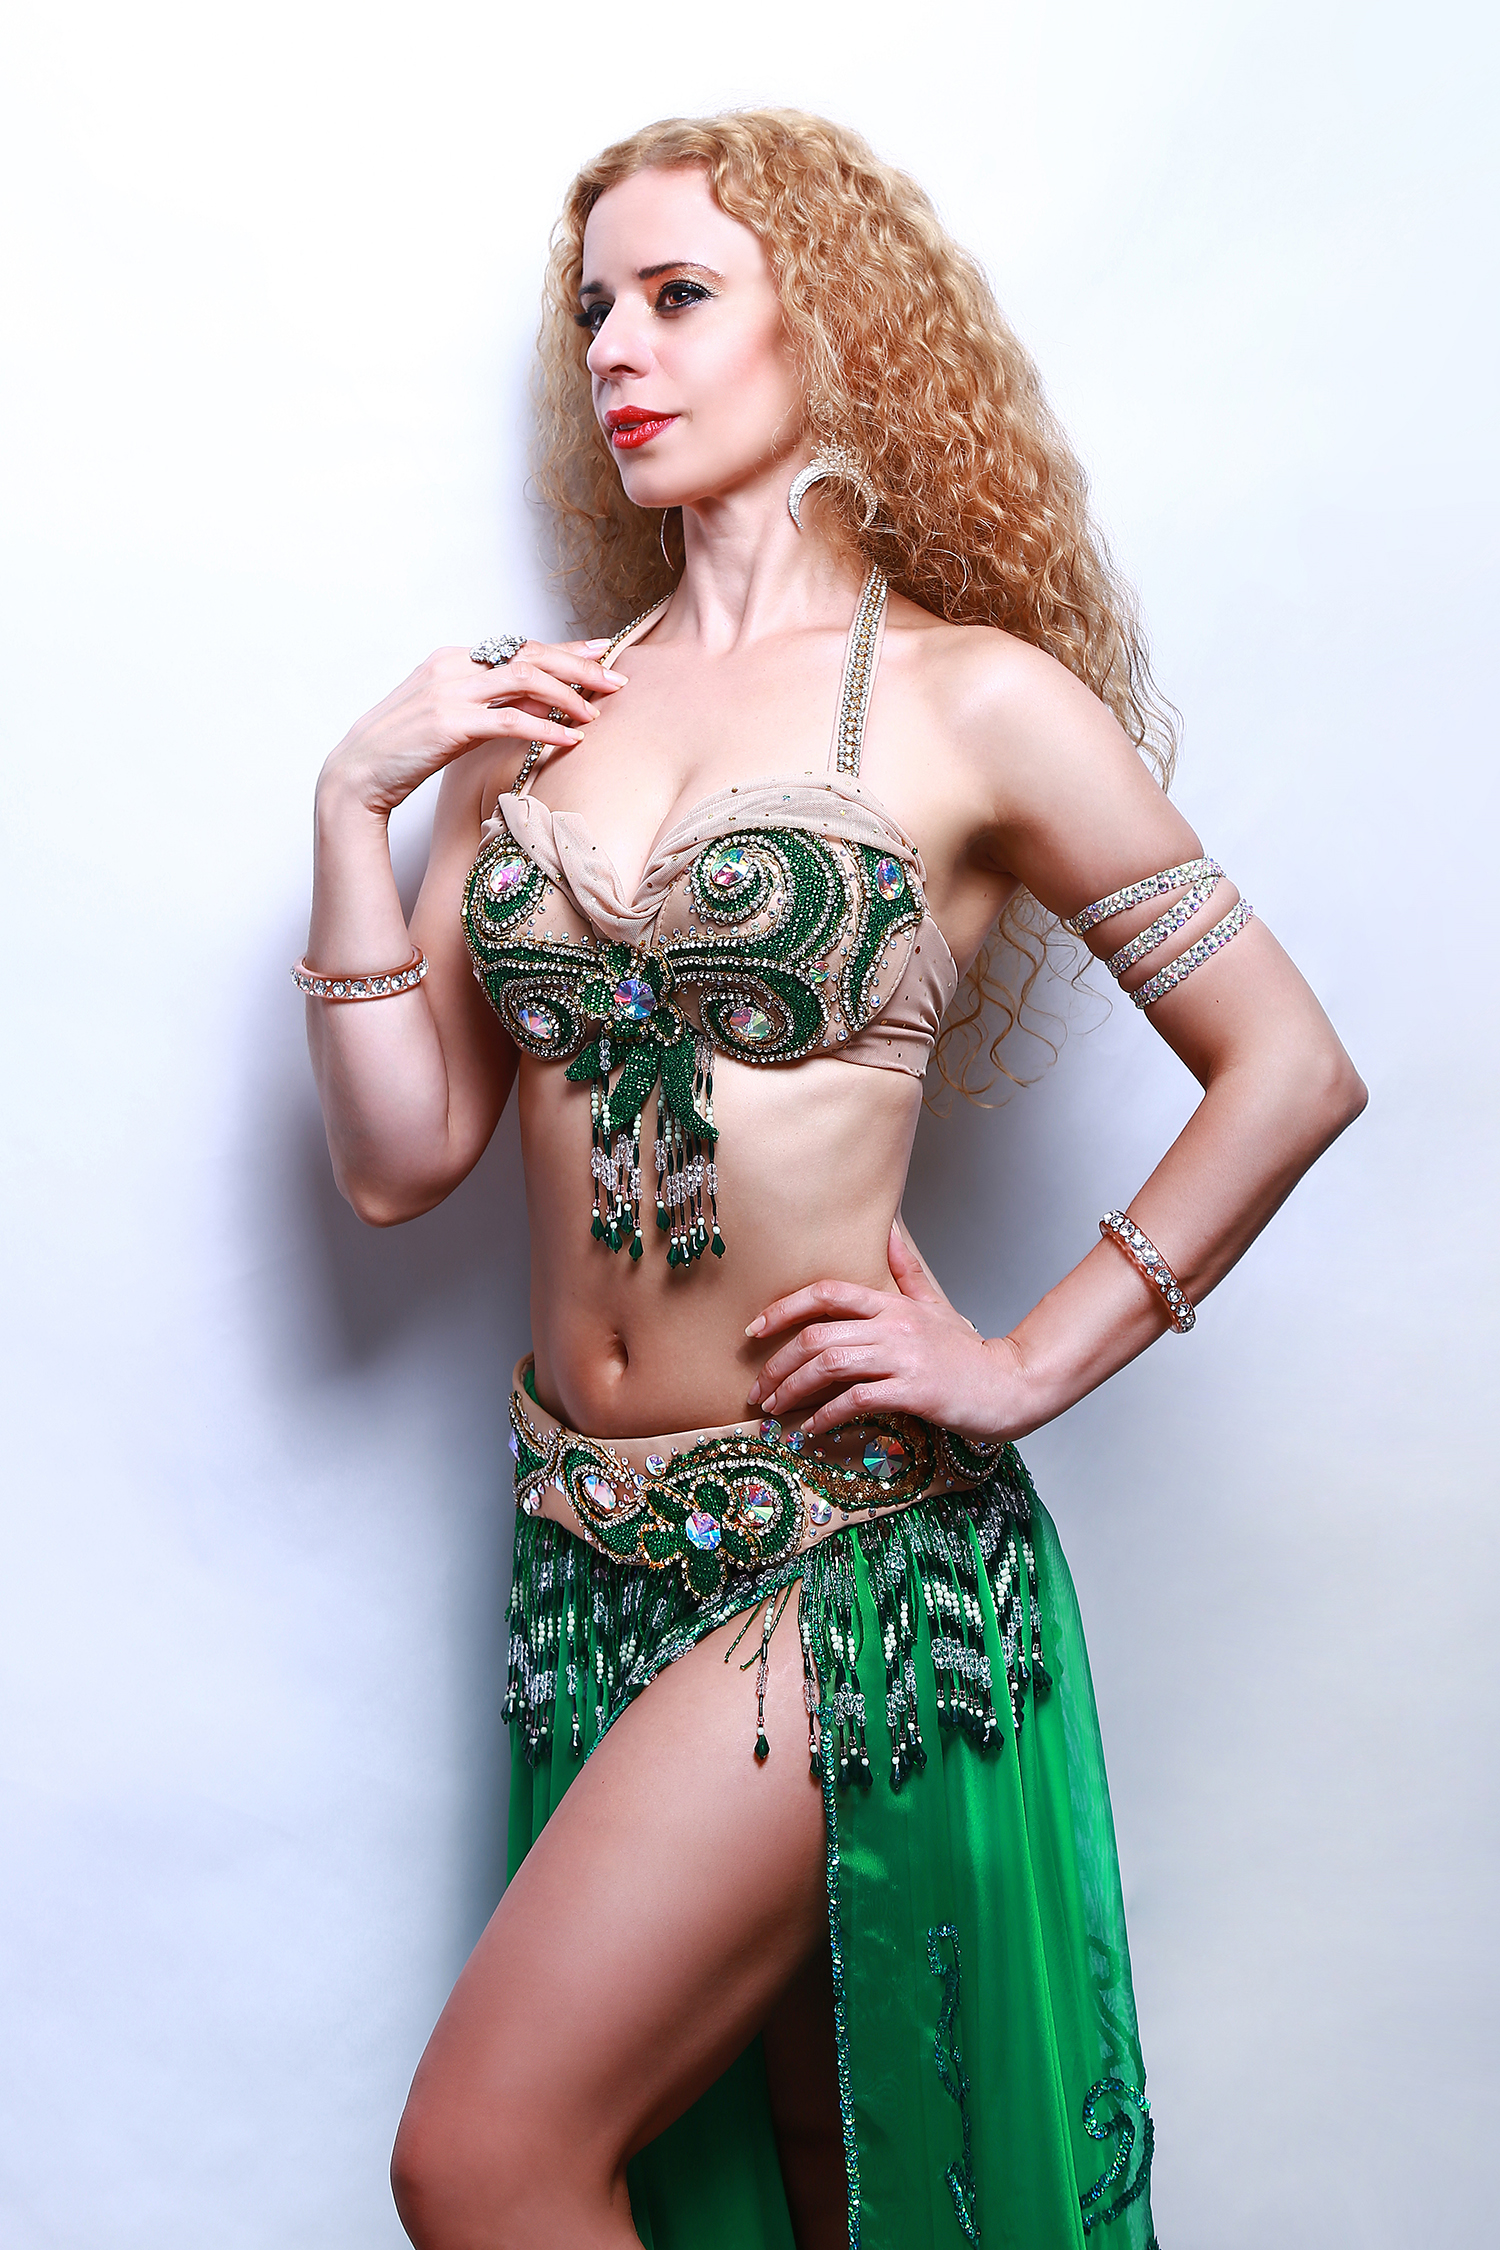 belly dance Melbourne, belly dancer hire Melbourne, belly dancers